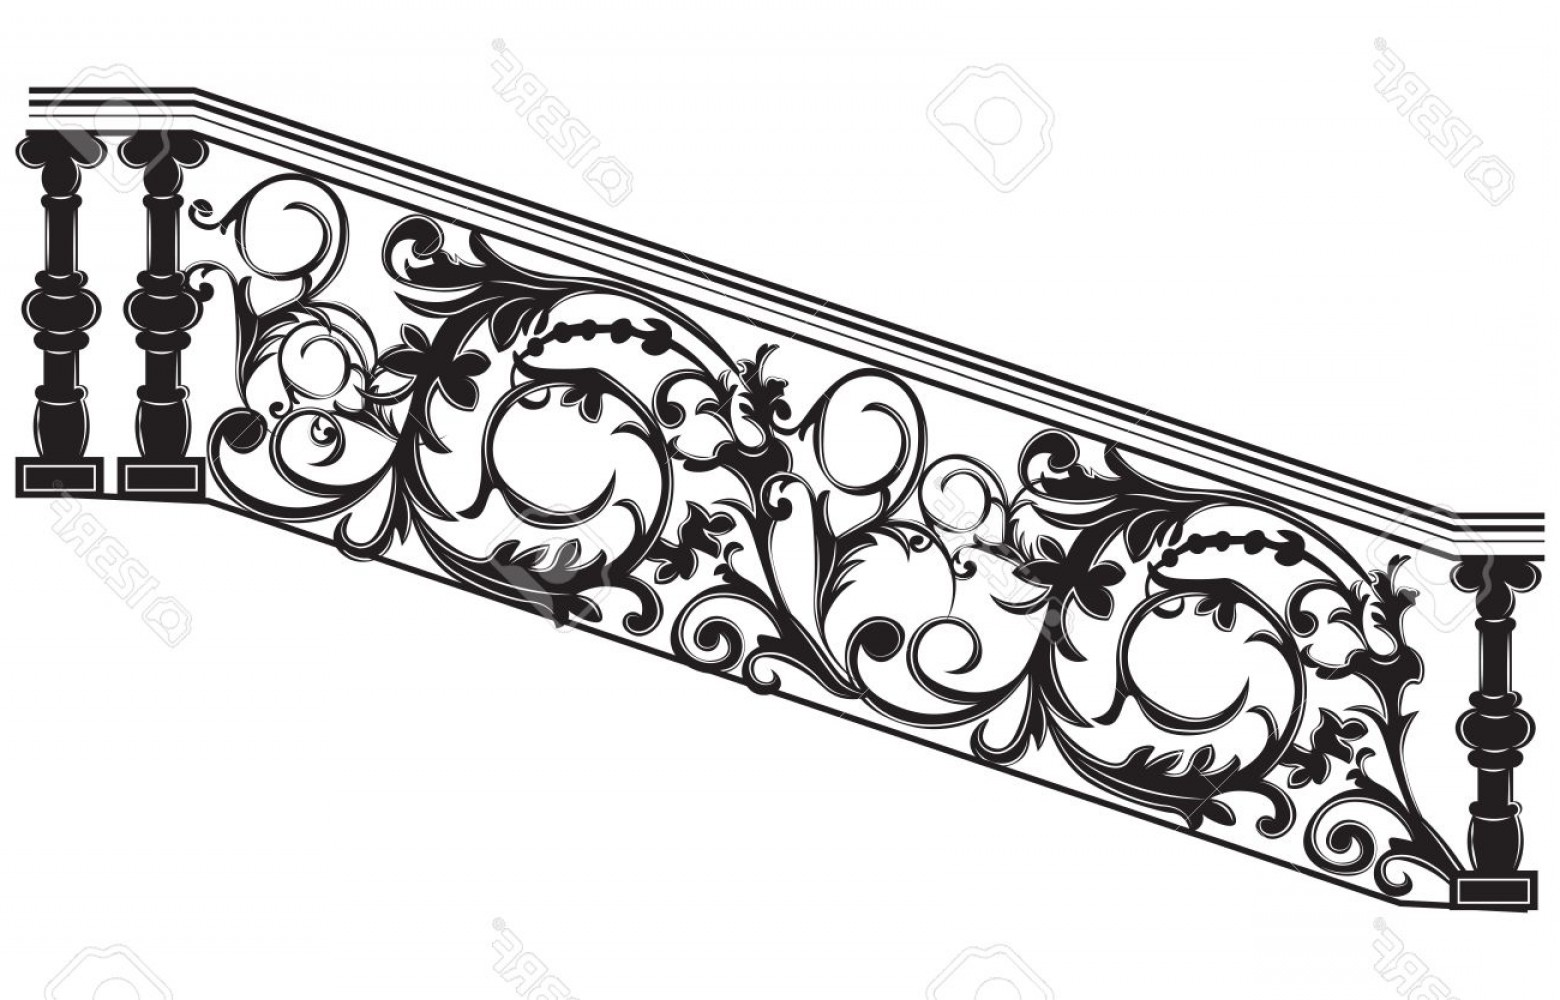 1560x1000 Photostock Vector Stair Railing Vector Wrought Iron Stairs Railing